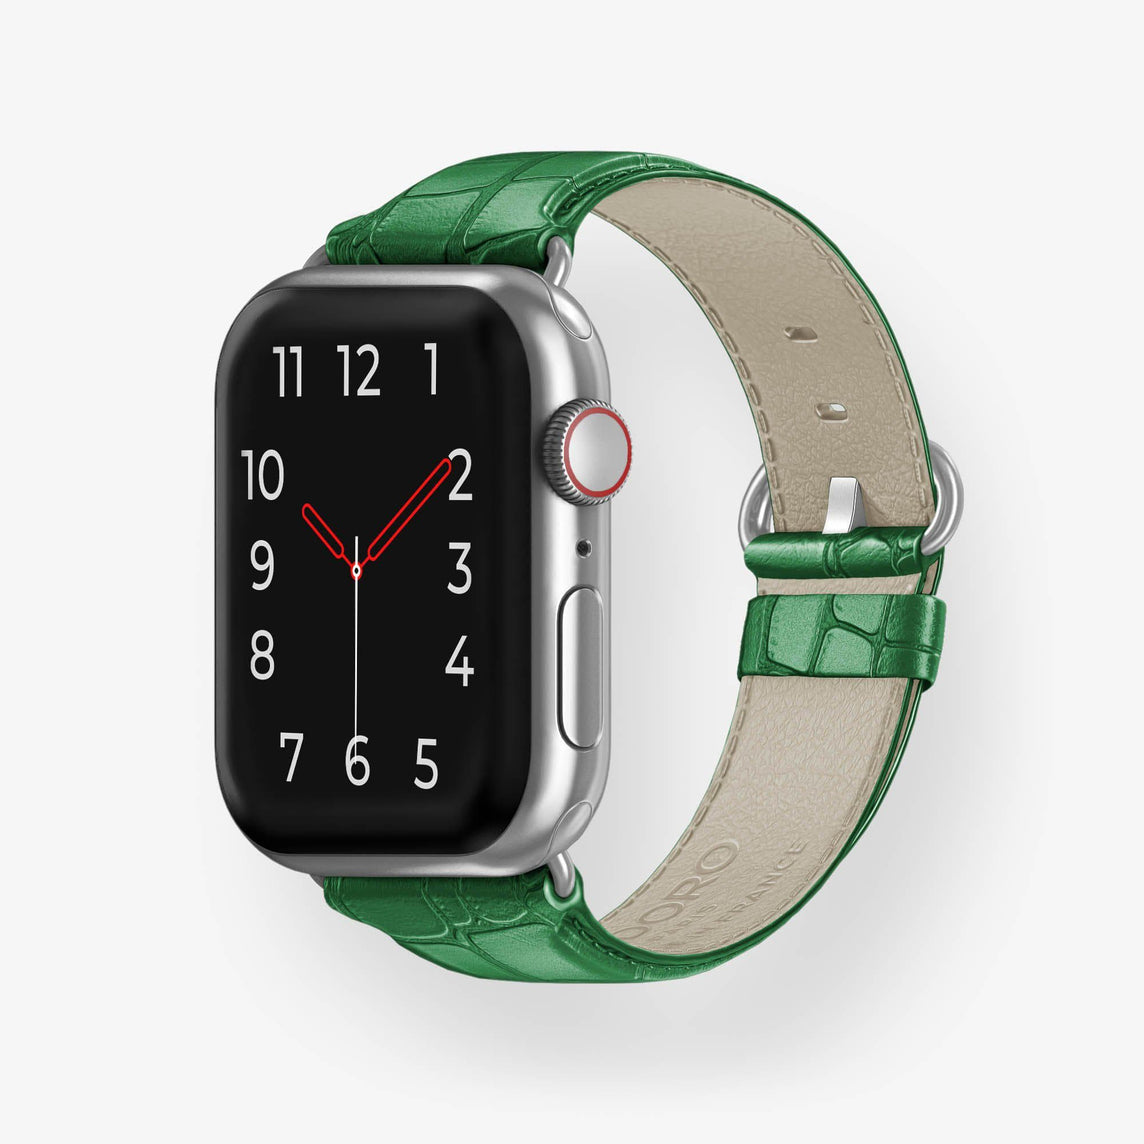 Alligator Apple Watch Strap 42mm-44mm | Green - Stainless Steel without-personalization